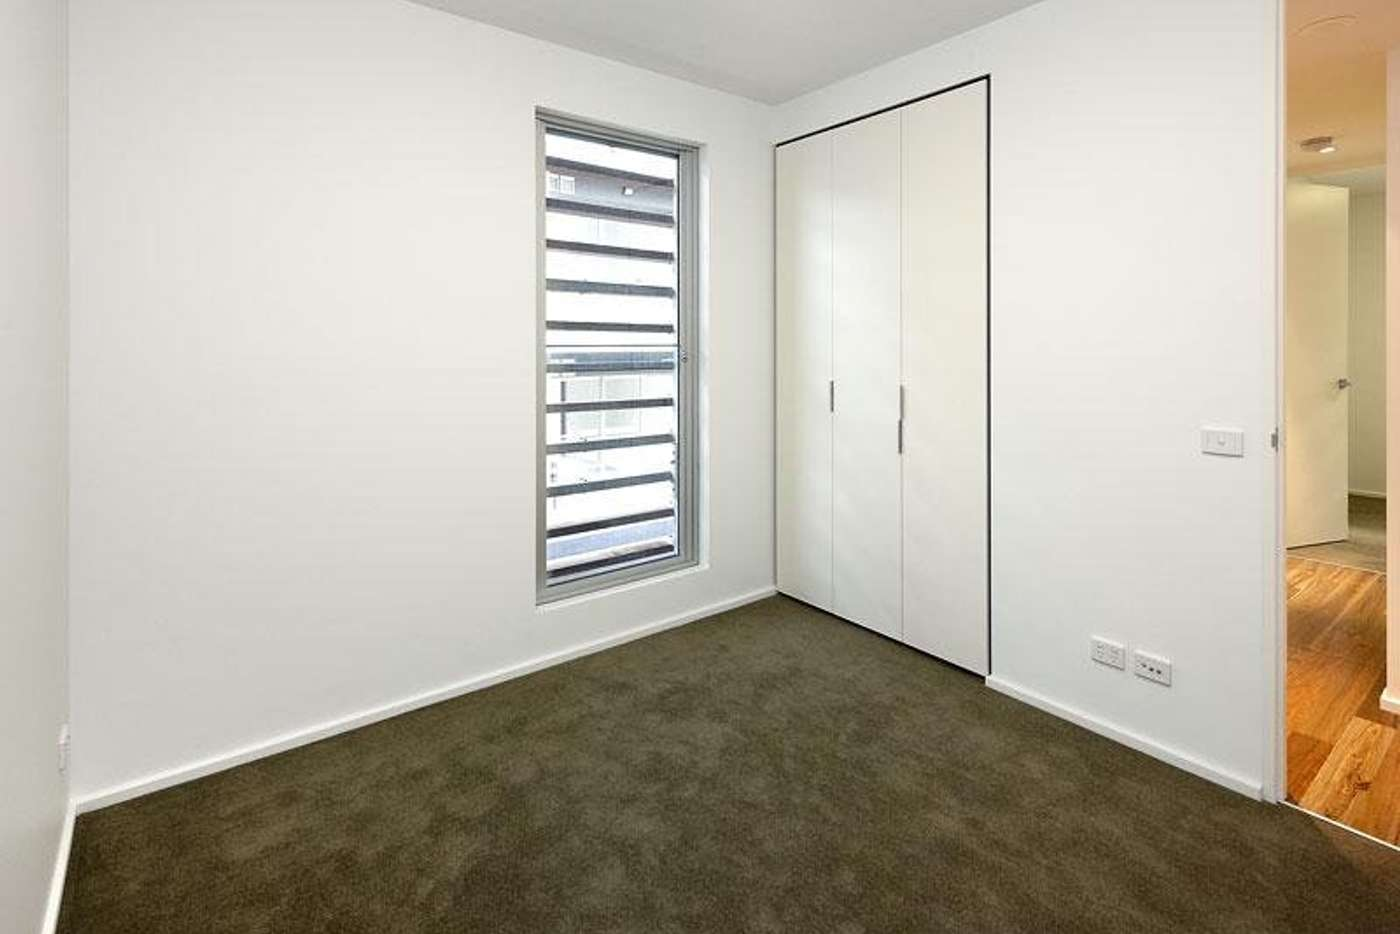 Sixth view of Homely apartment listing, 202/77 Abinger Street, Richmond VIC 3121